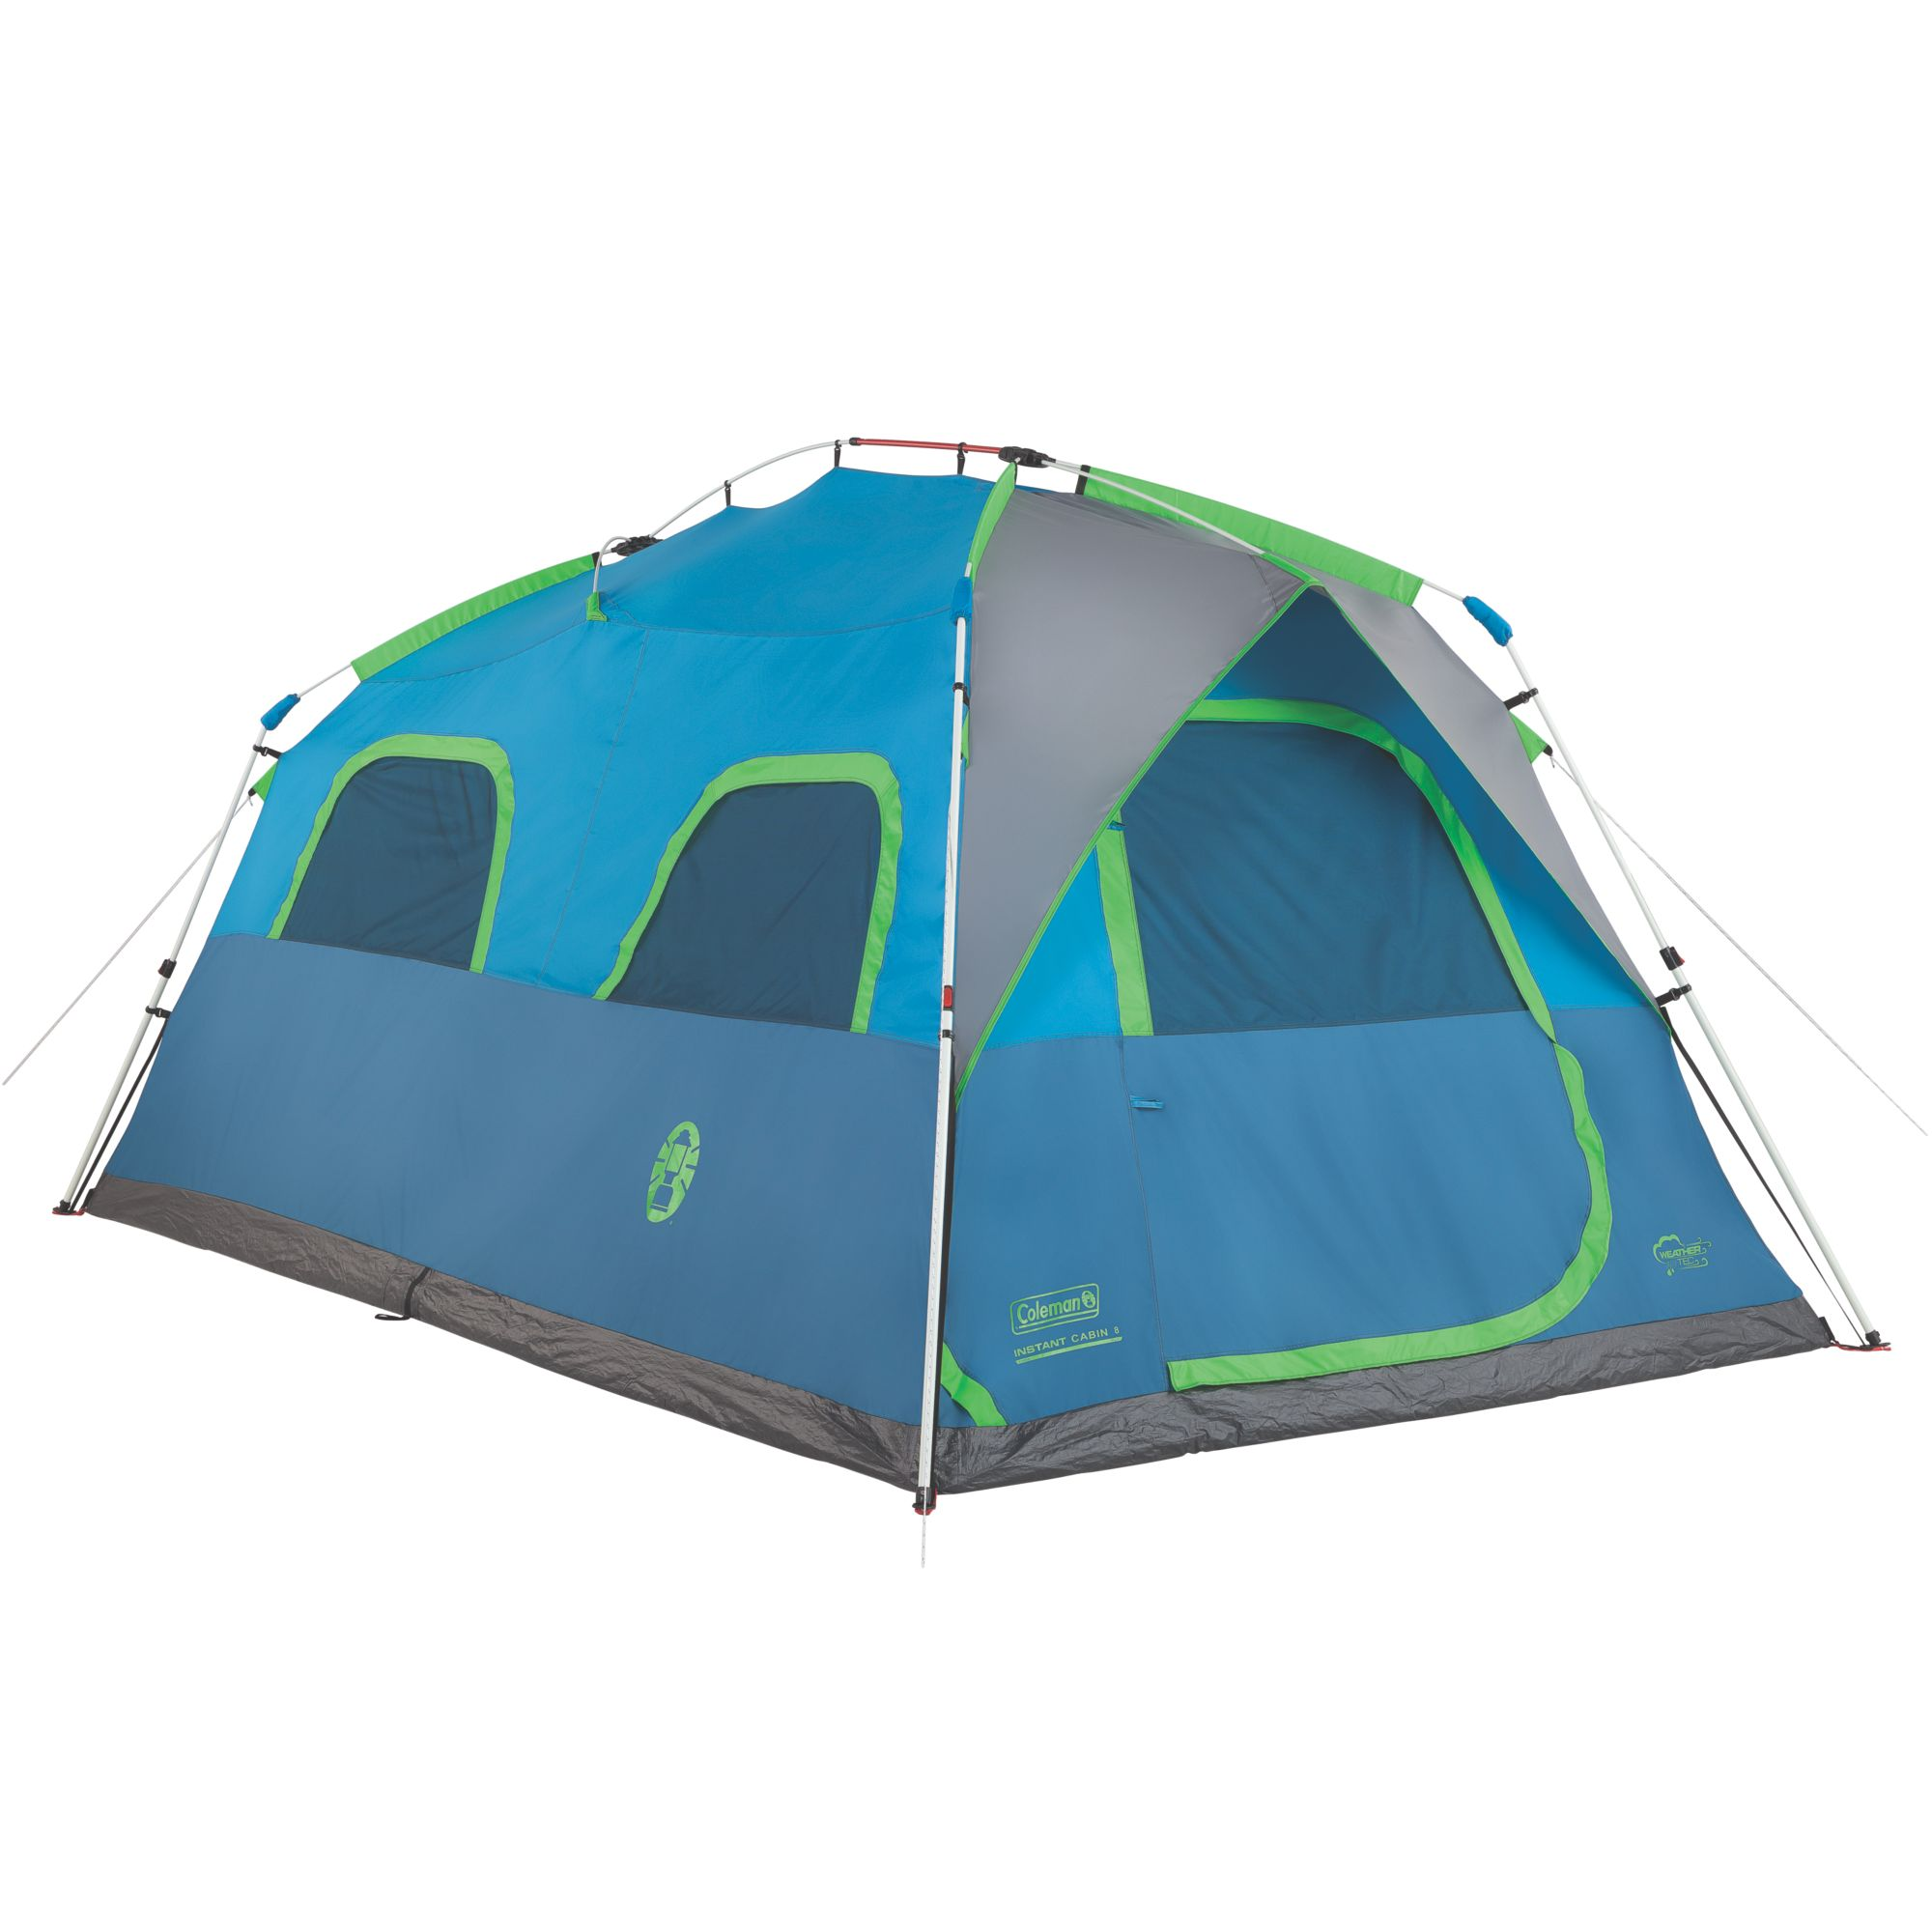 Instant tents 8 person tent coleman signal mountain 8 person instant tent sciox Image collections